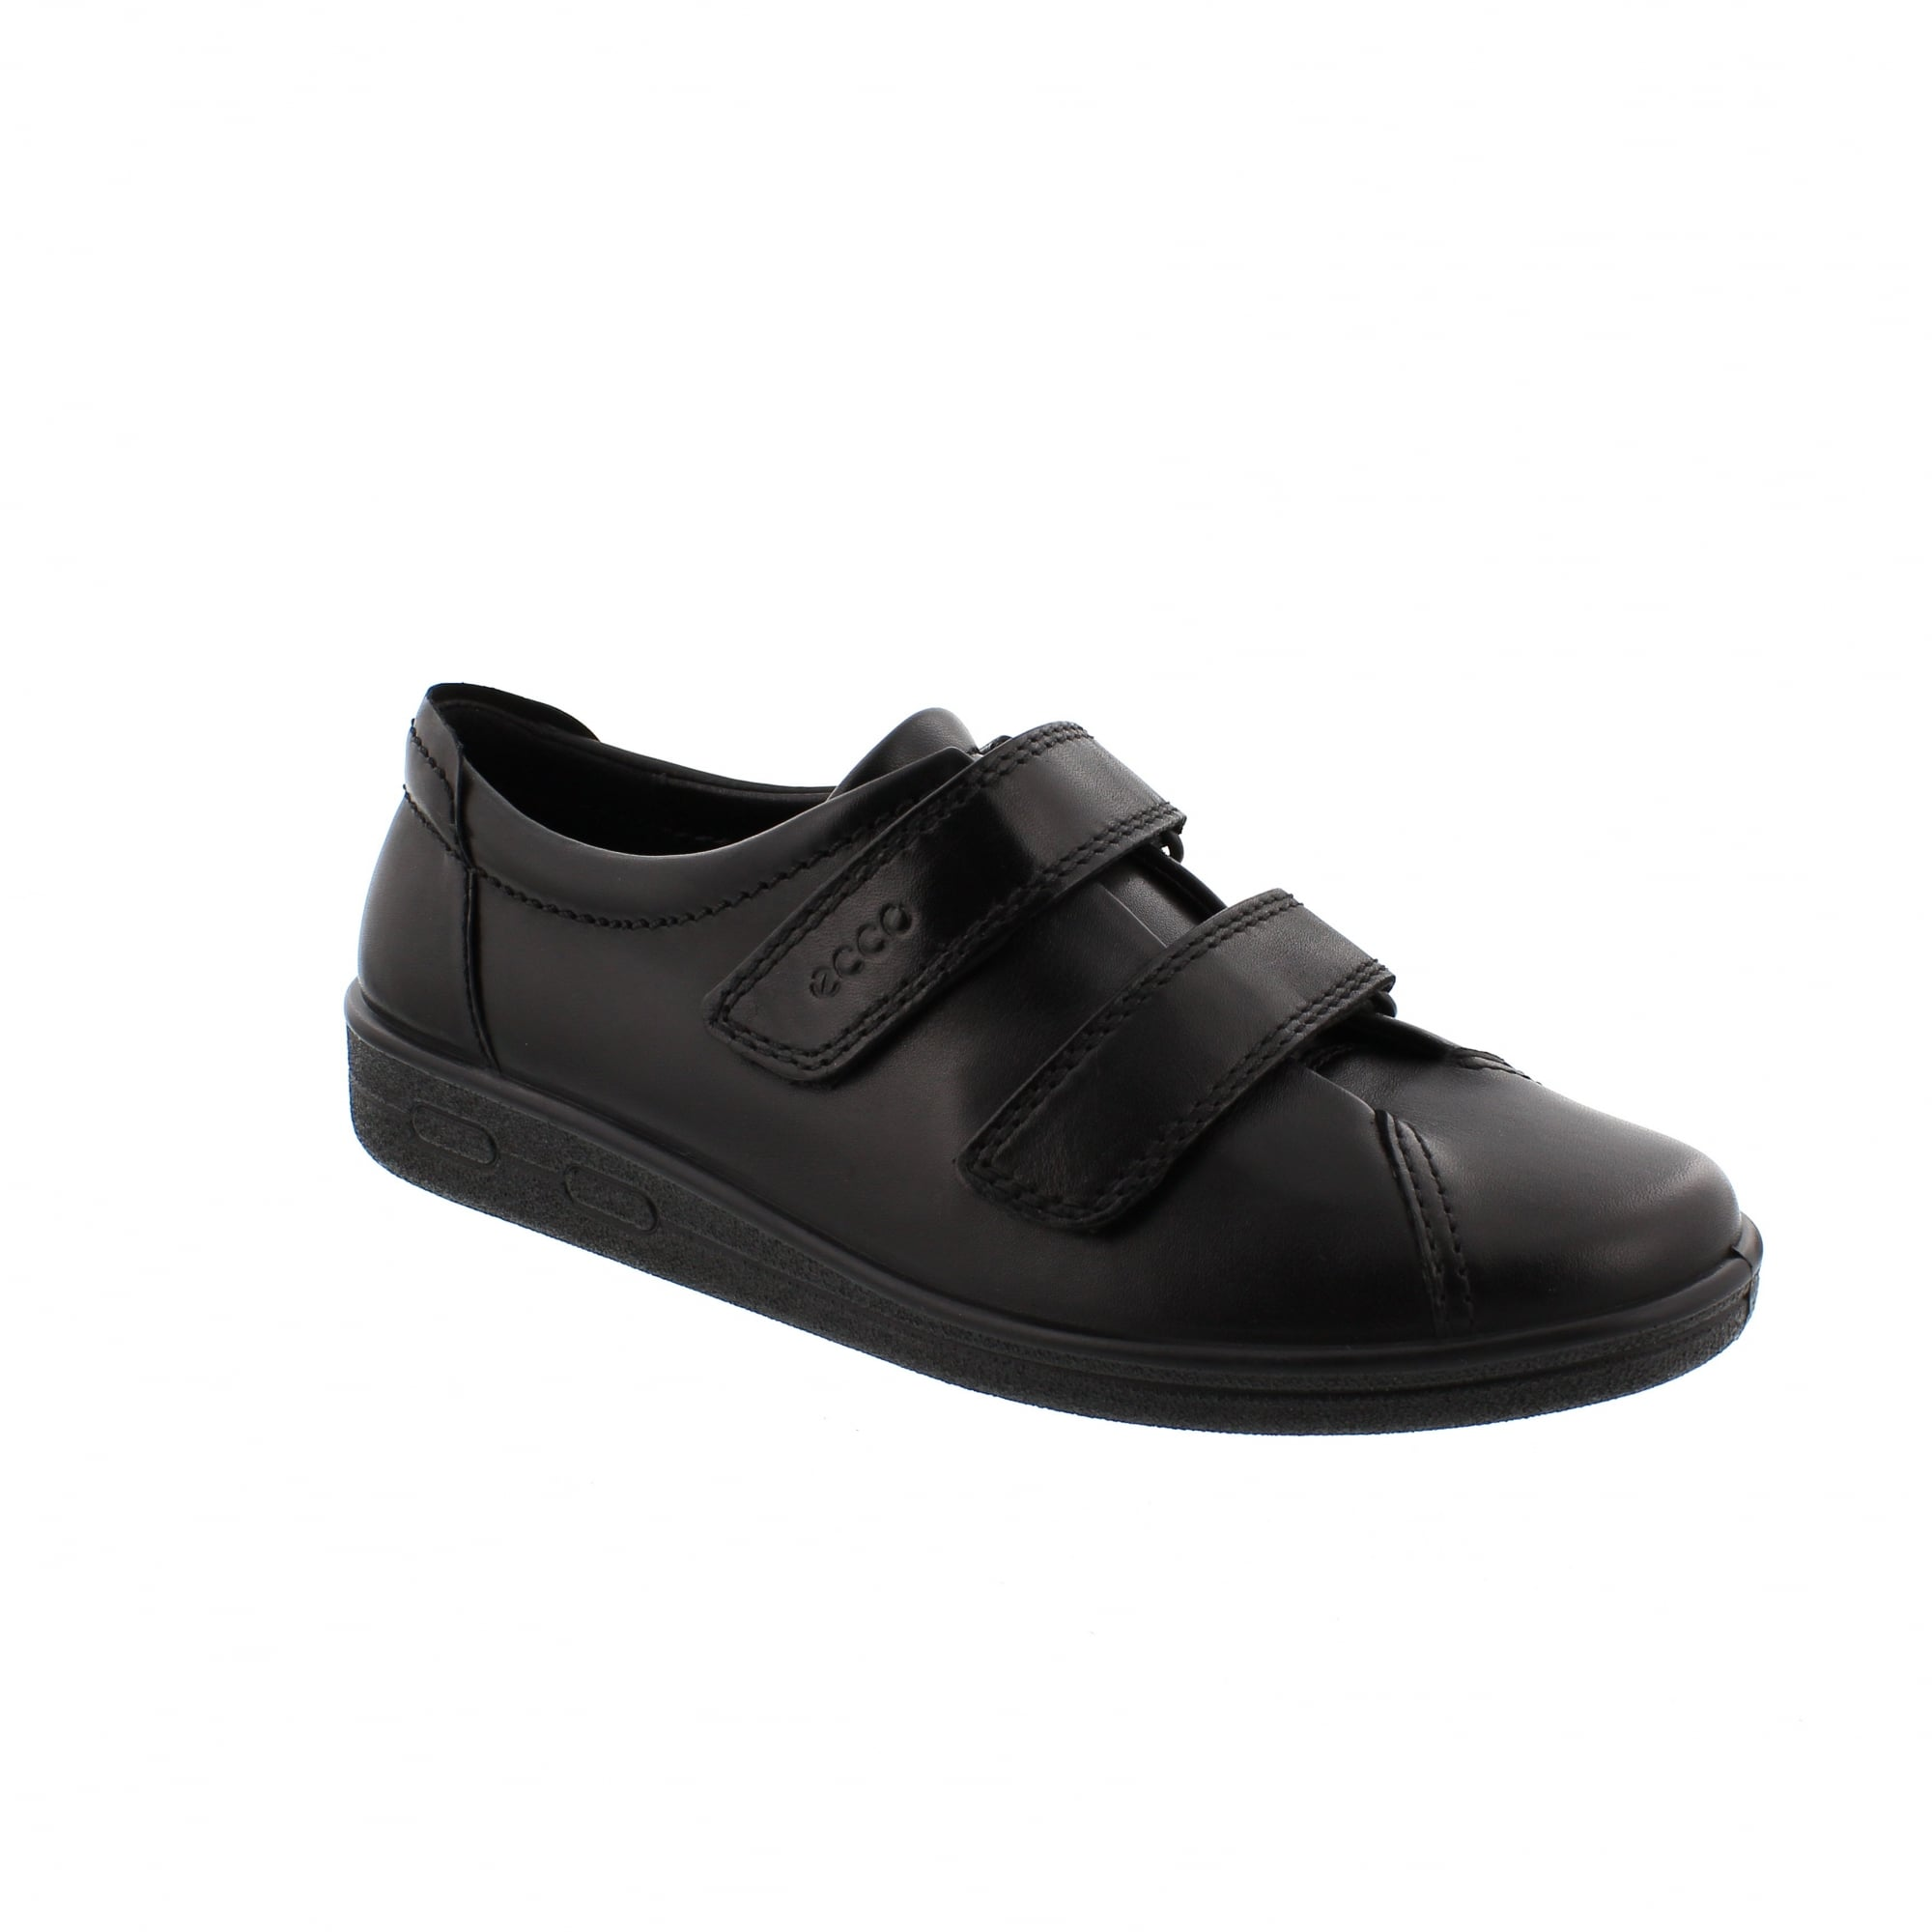 Womens from Rogerson Shoes UK